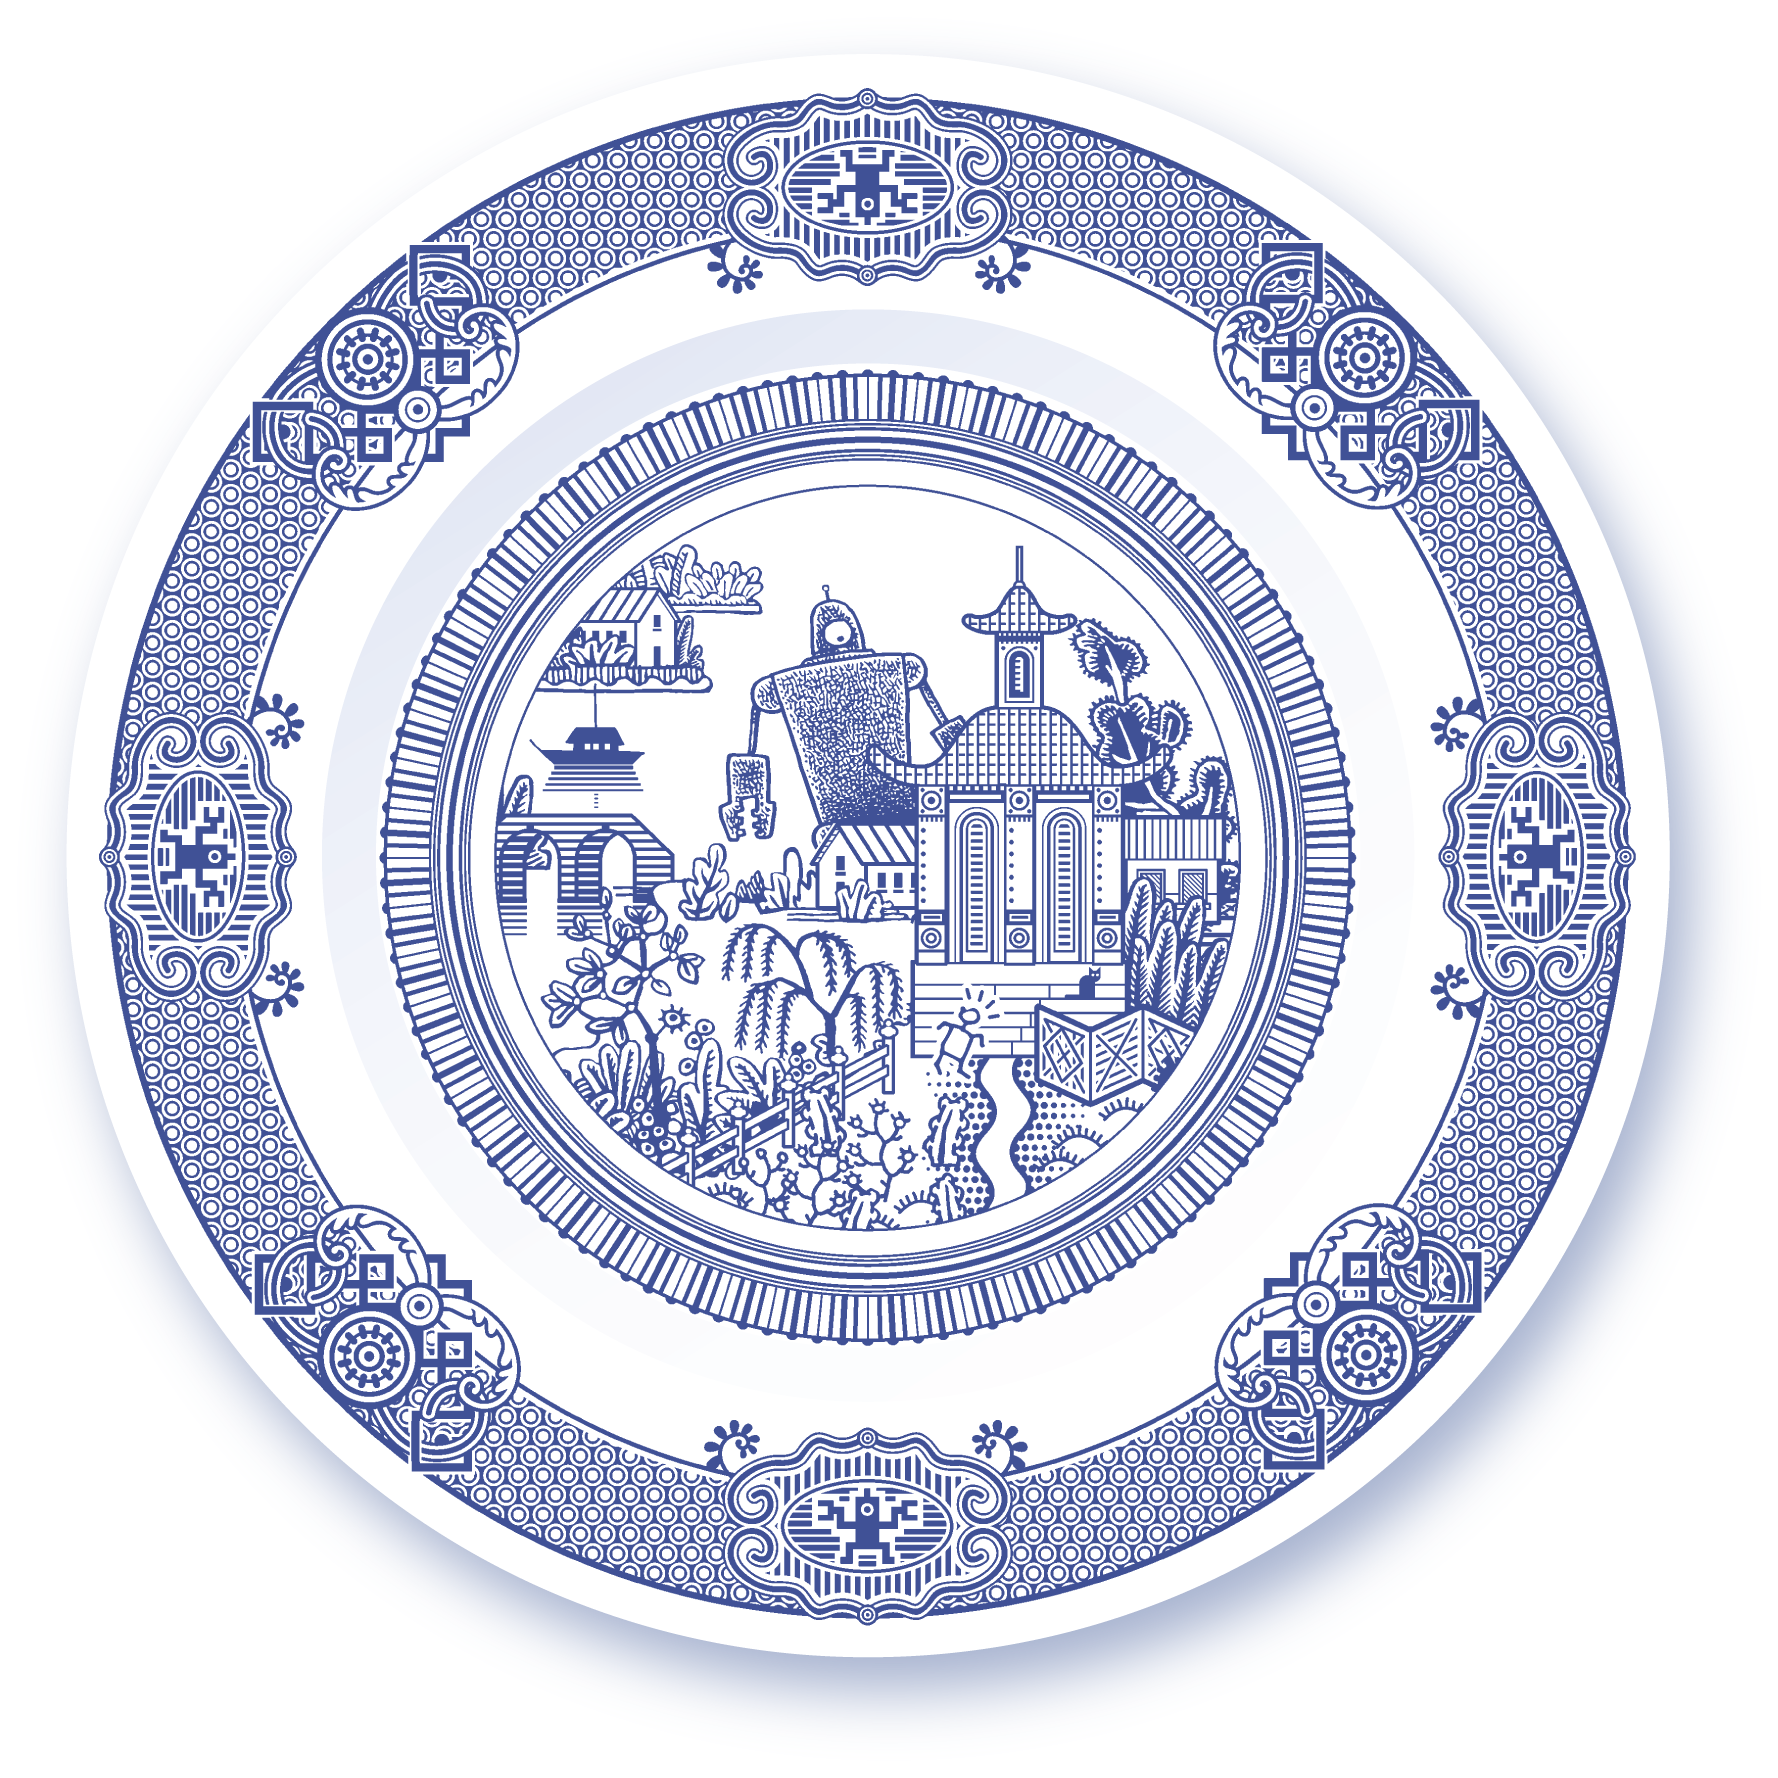 Calamityware Porcelain Plates With Traditional Designs That Are Augmented Monsters